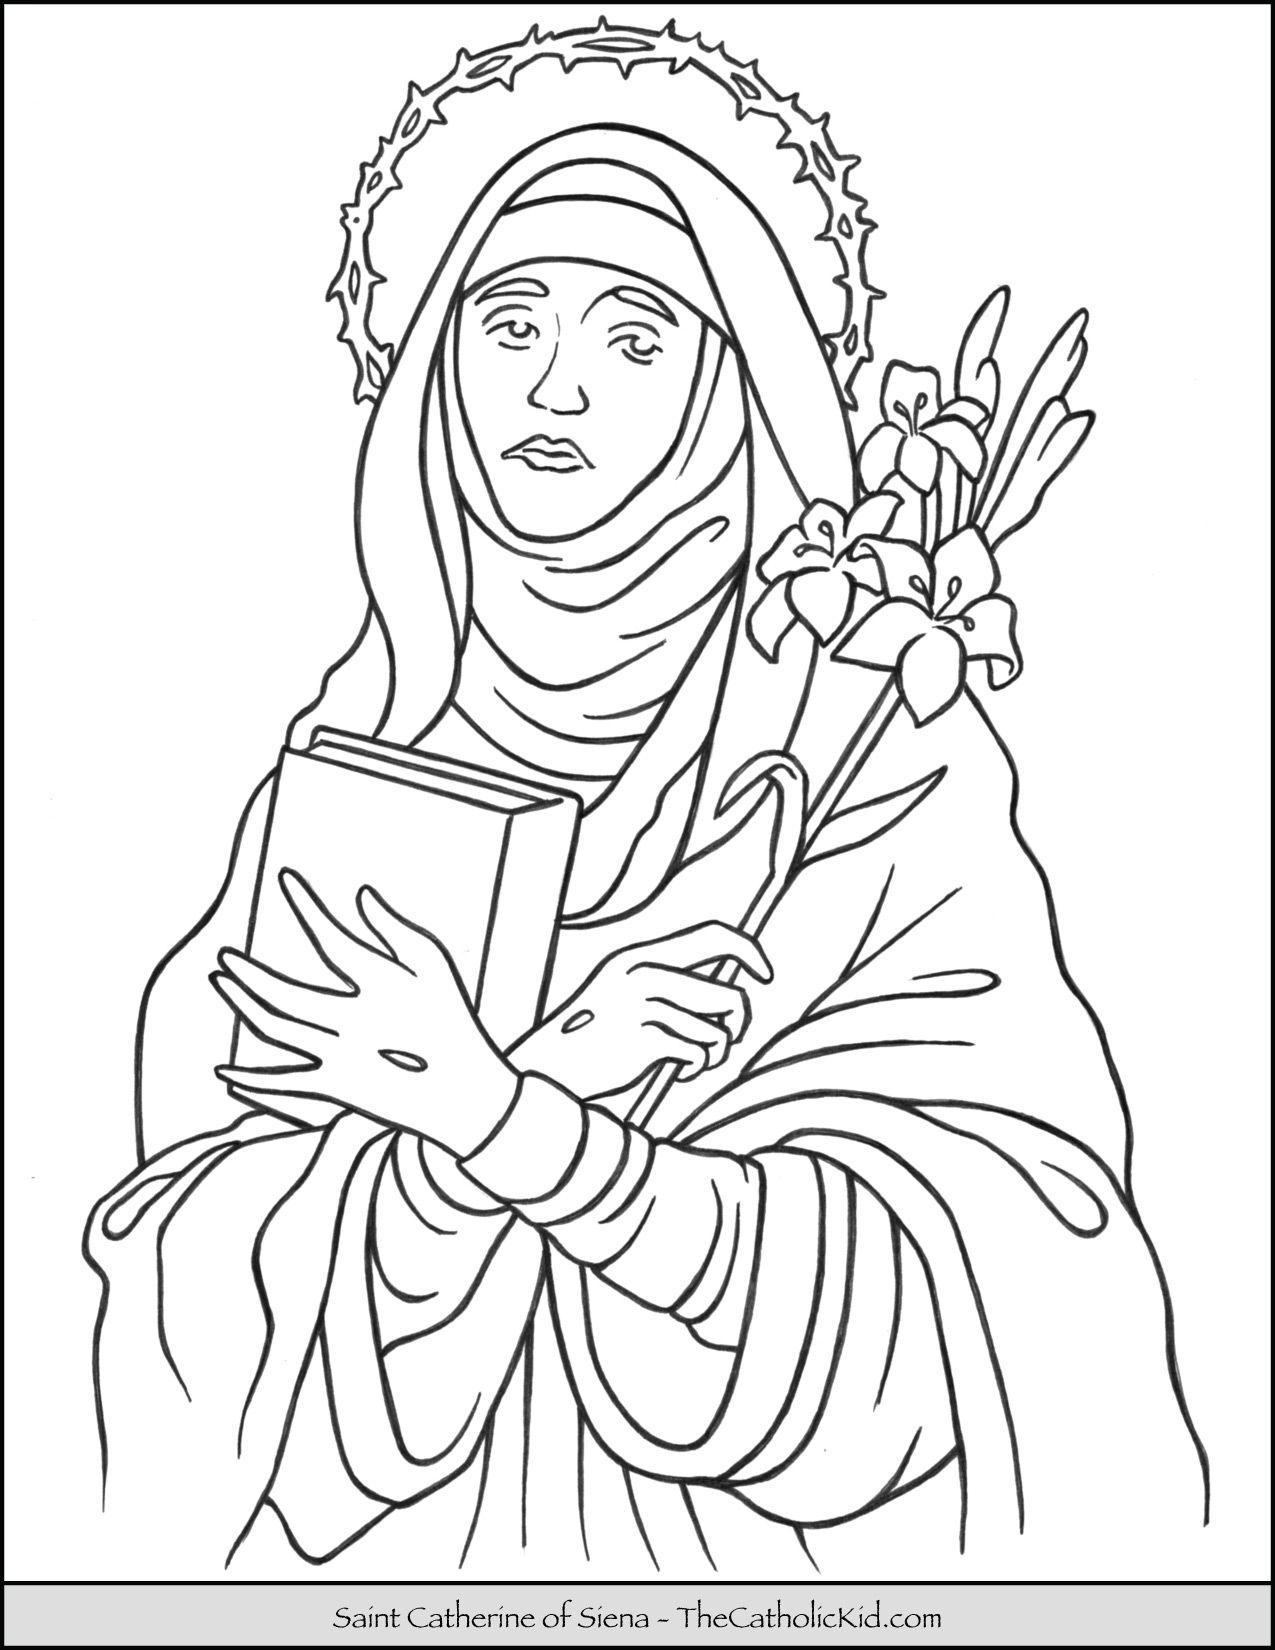 Saint Catherine Of Siena Coloring Page Thecatholickid Com With